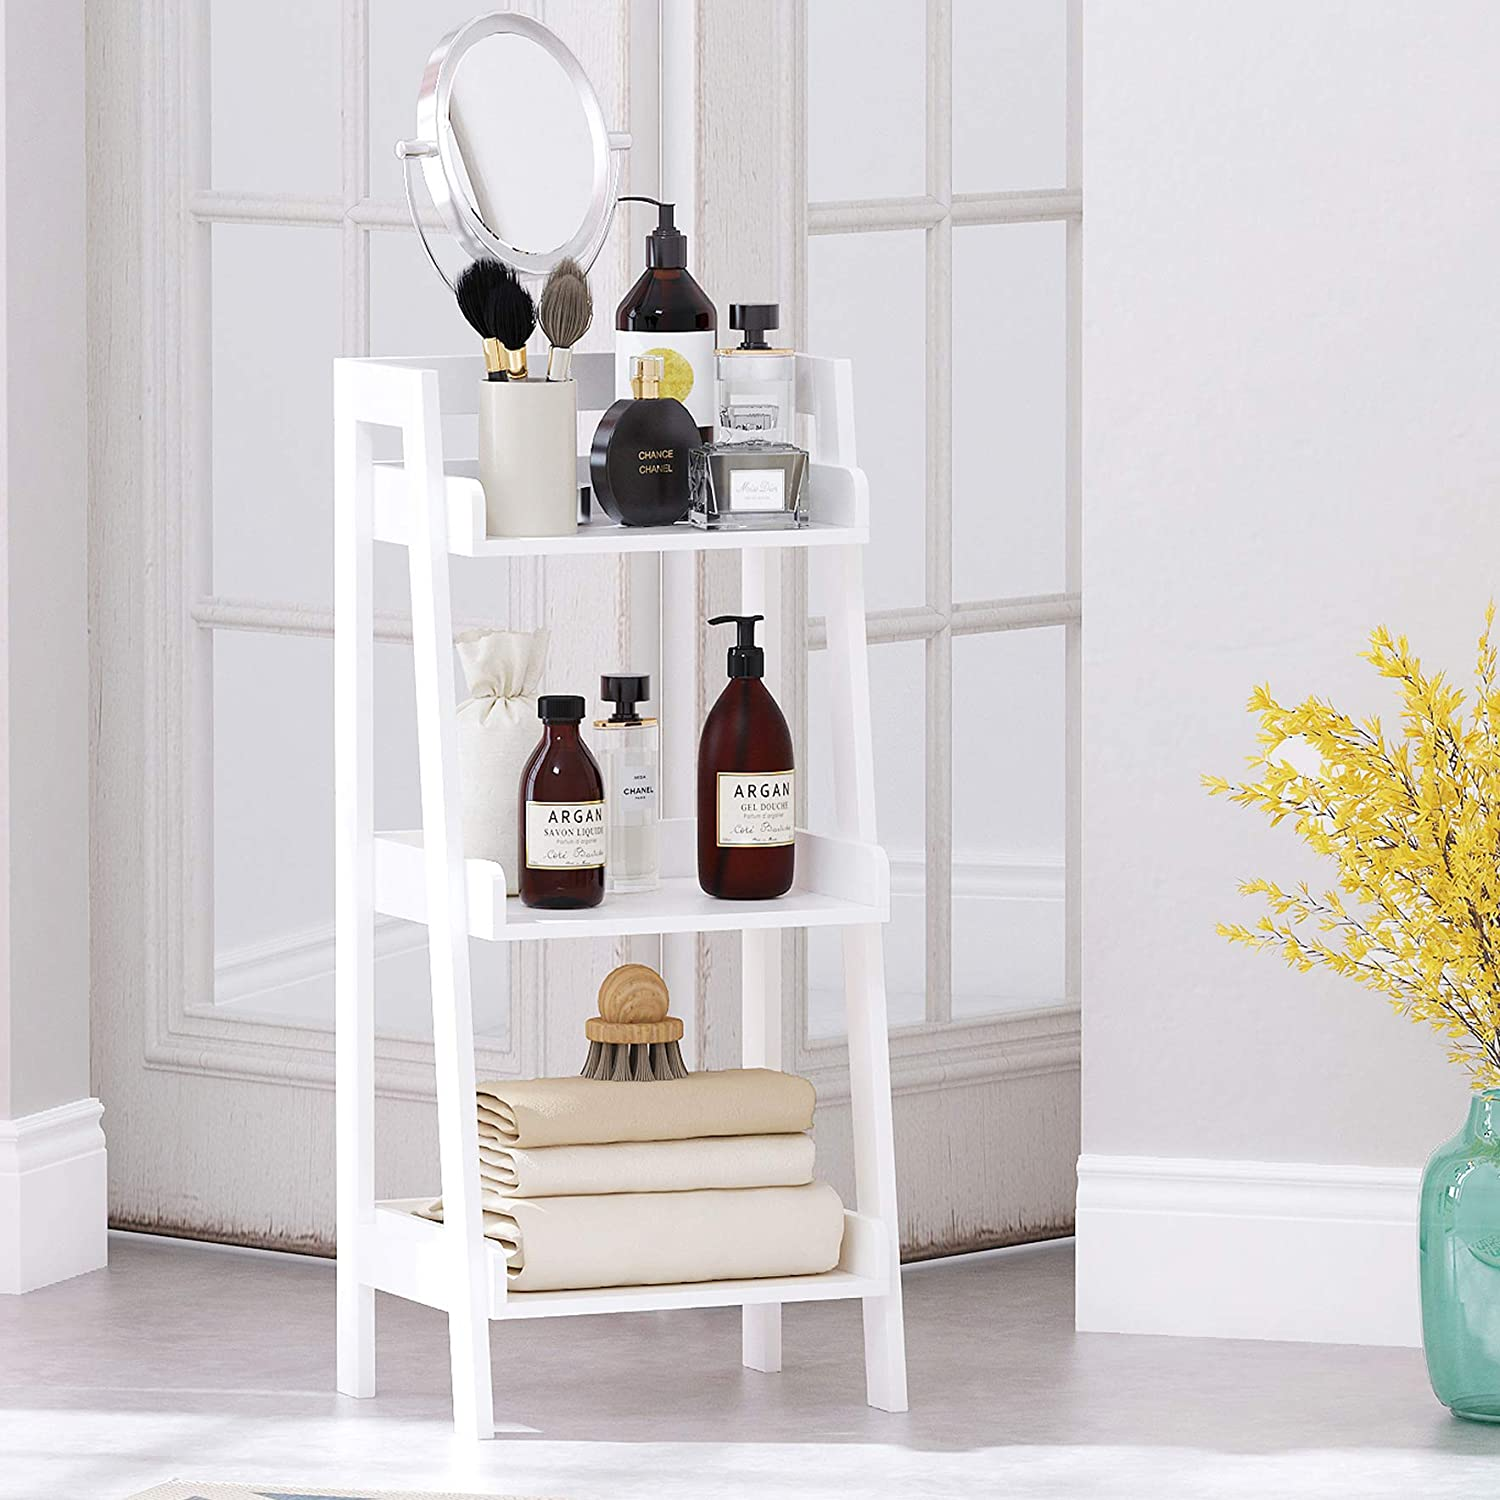 This darling ladder shelf would make the perfect unique nightstand!